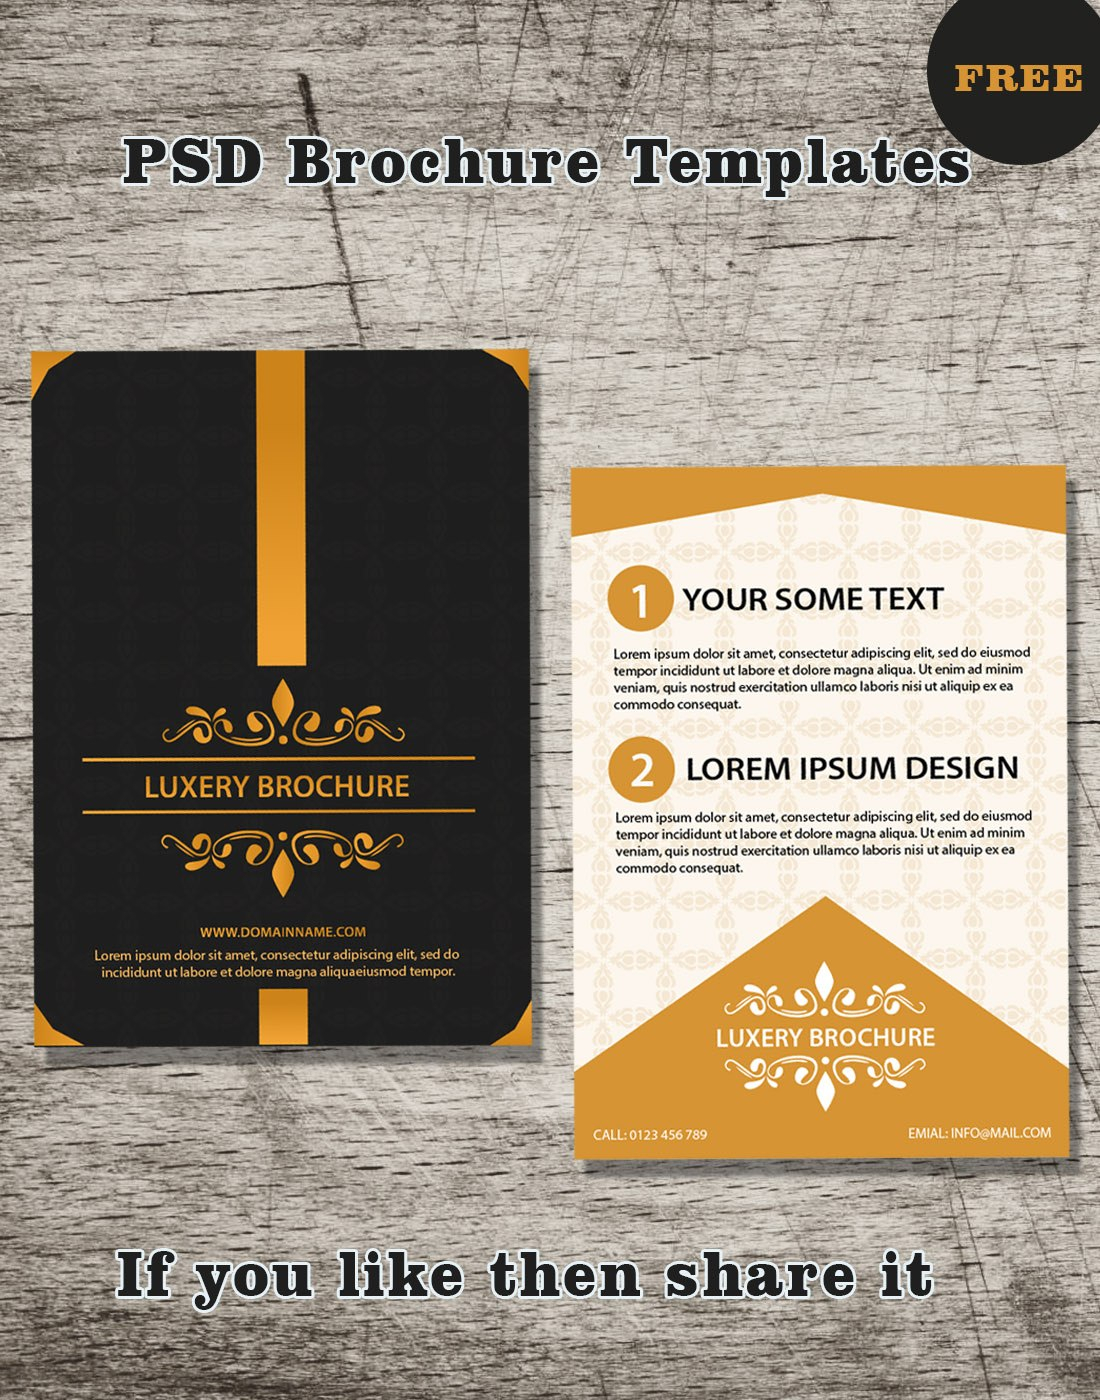 Free Brochure Templates Psd Template Outstanding Ideas School Throughout Brochure Templates Ai Free Download